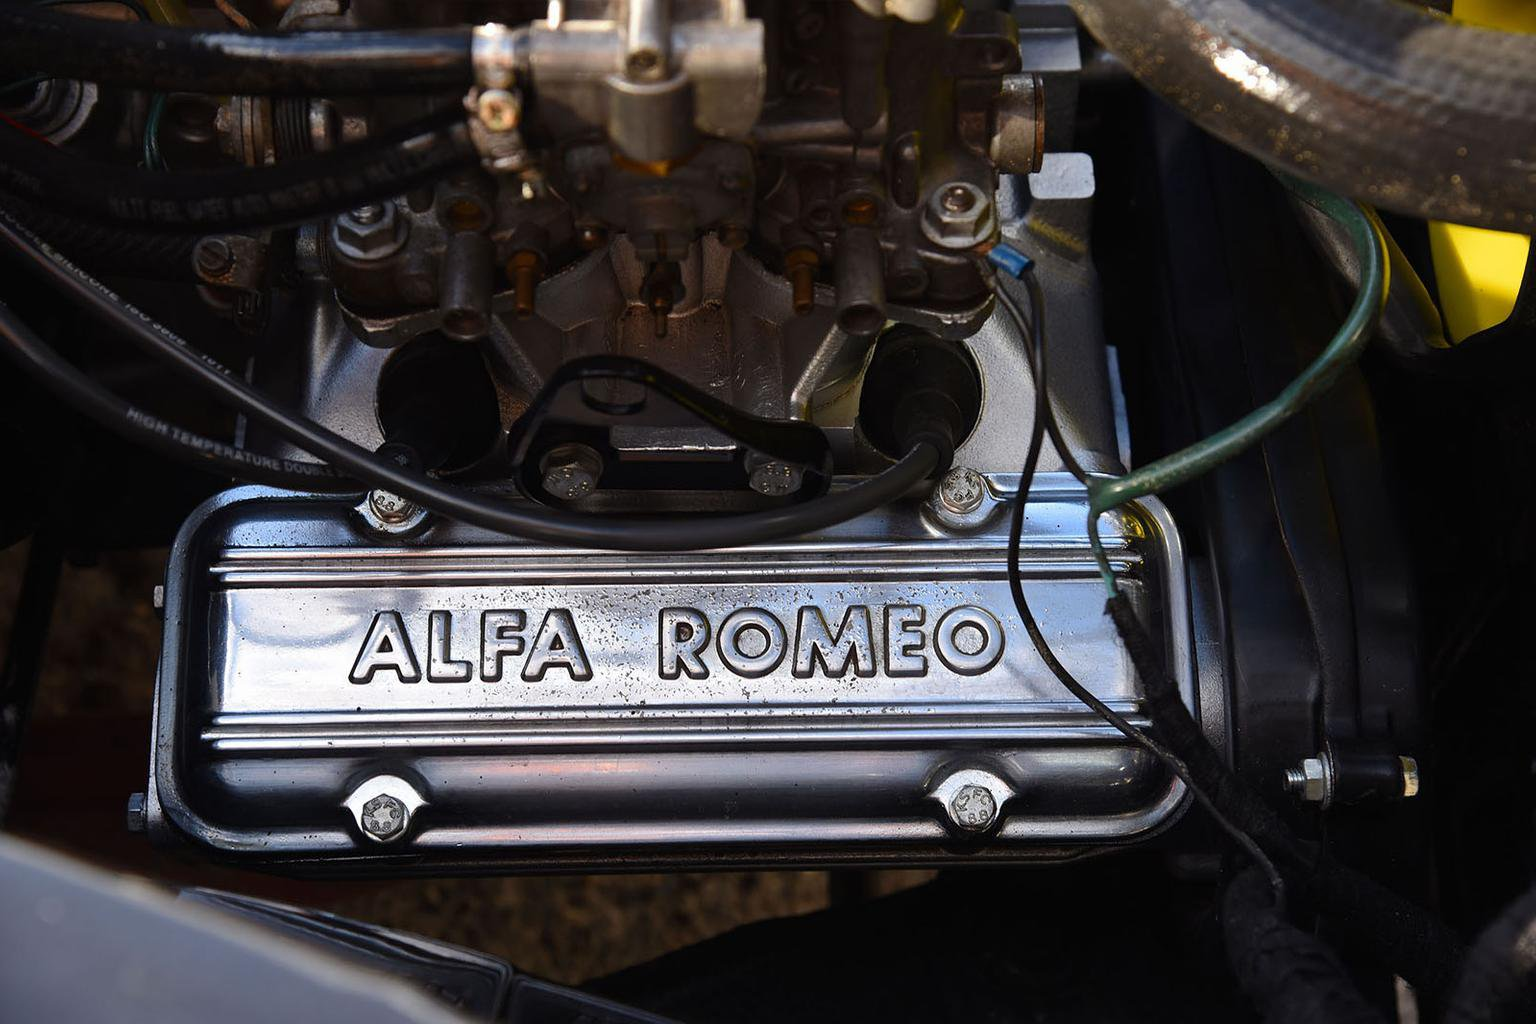 Alfa Romeo Alfasud Ti - Rewind Wednesday